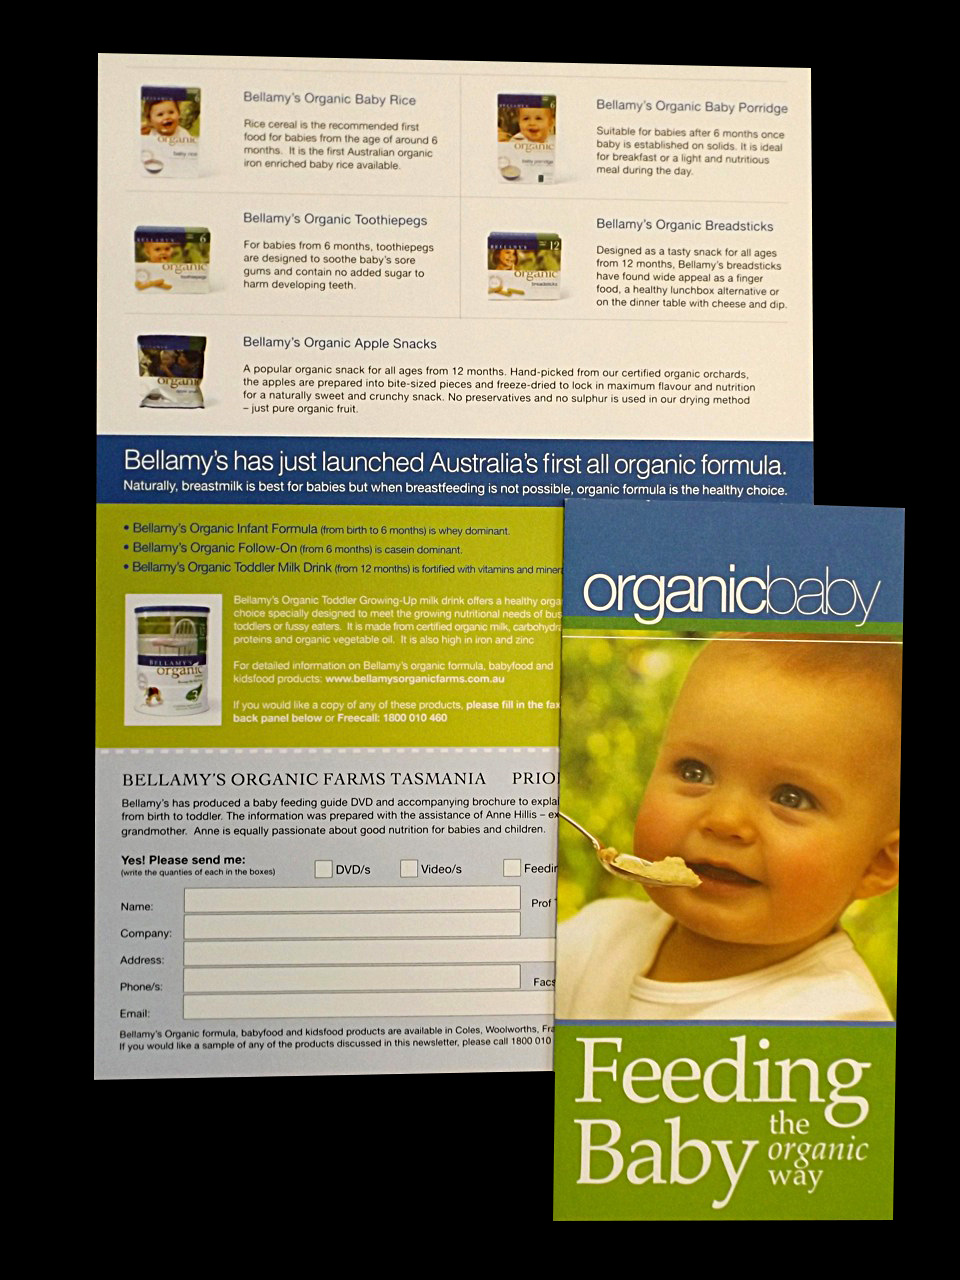 BELLAMY'S ORGANIC BABYFOOD - Packaging, photo styling, advertising, brochures, poster design and business collaterals.